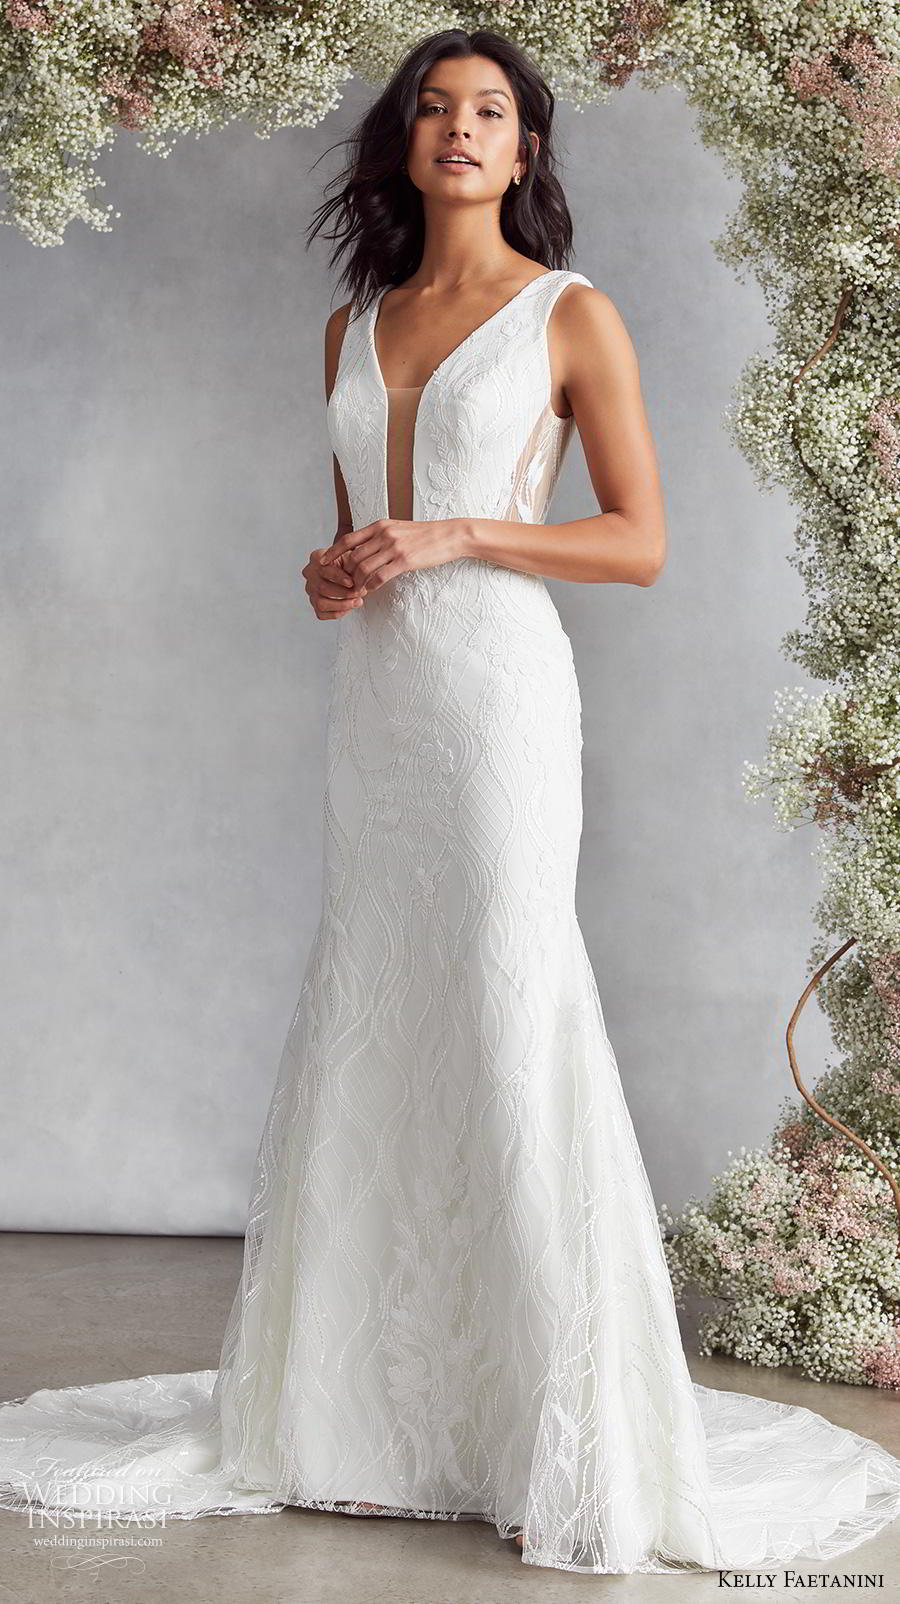 kelly faetanini fall 2020 bridal sleeveless funnel v neck light embellishment elegant fit and flare wedding dress backless v back medium train (18) mv